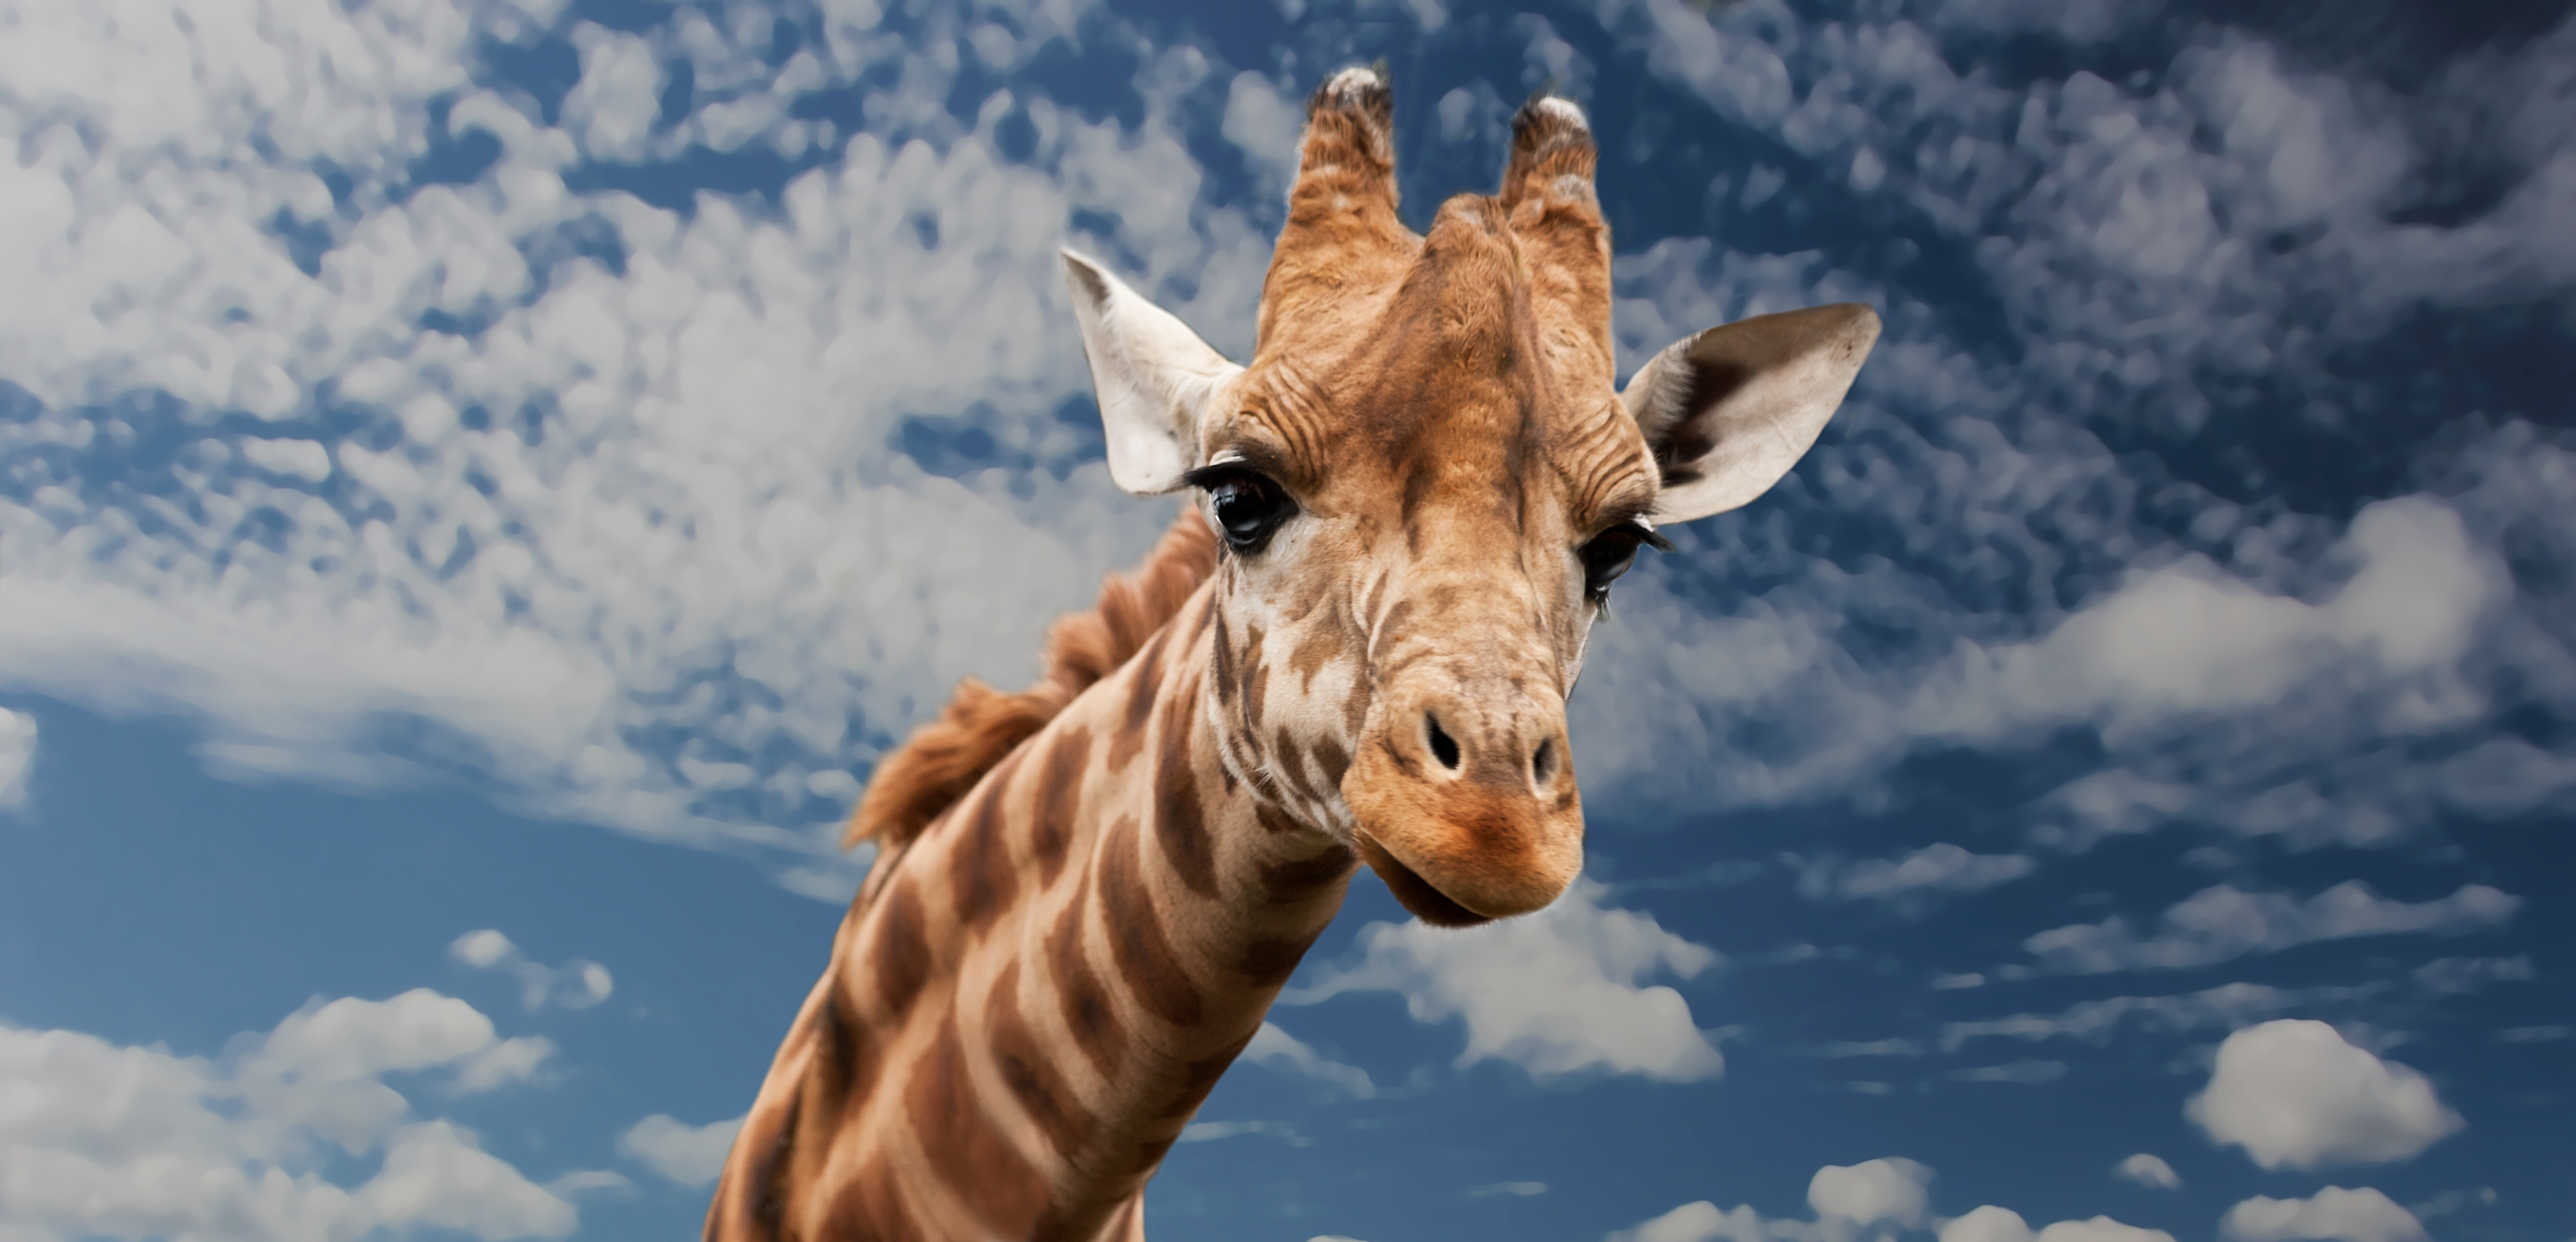 brown beige and white giraffe under white clouds free stock photo